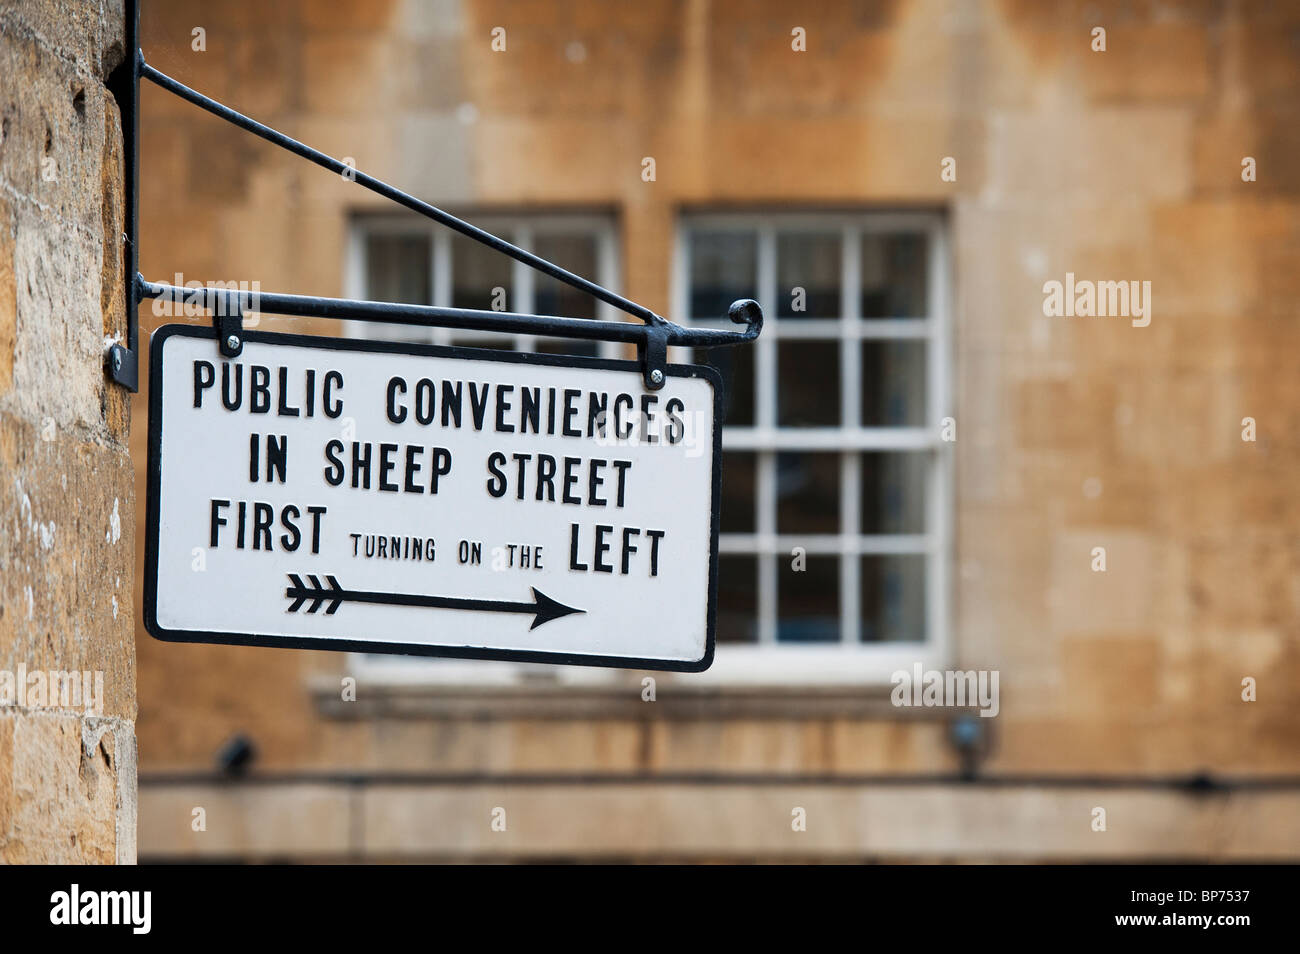 Public Conveniences sign, High street, Chipping Campden, Cotswolds, Gloucestershire, England - Stock Image